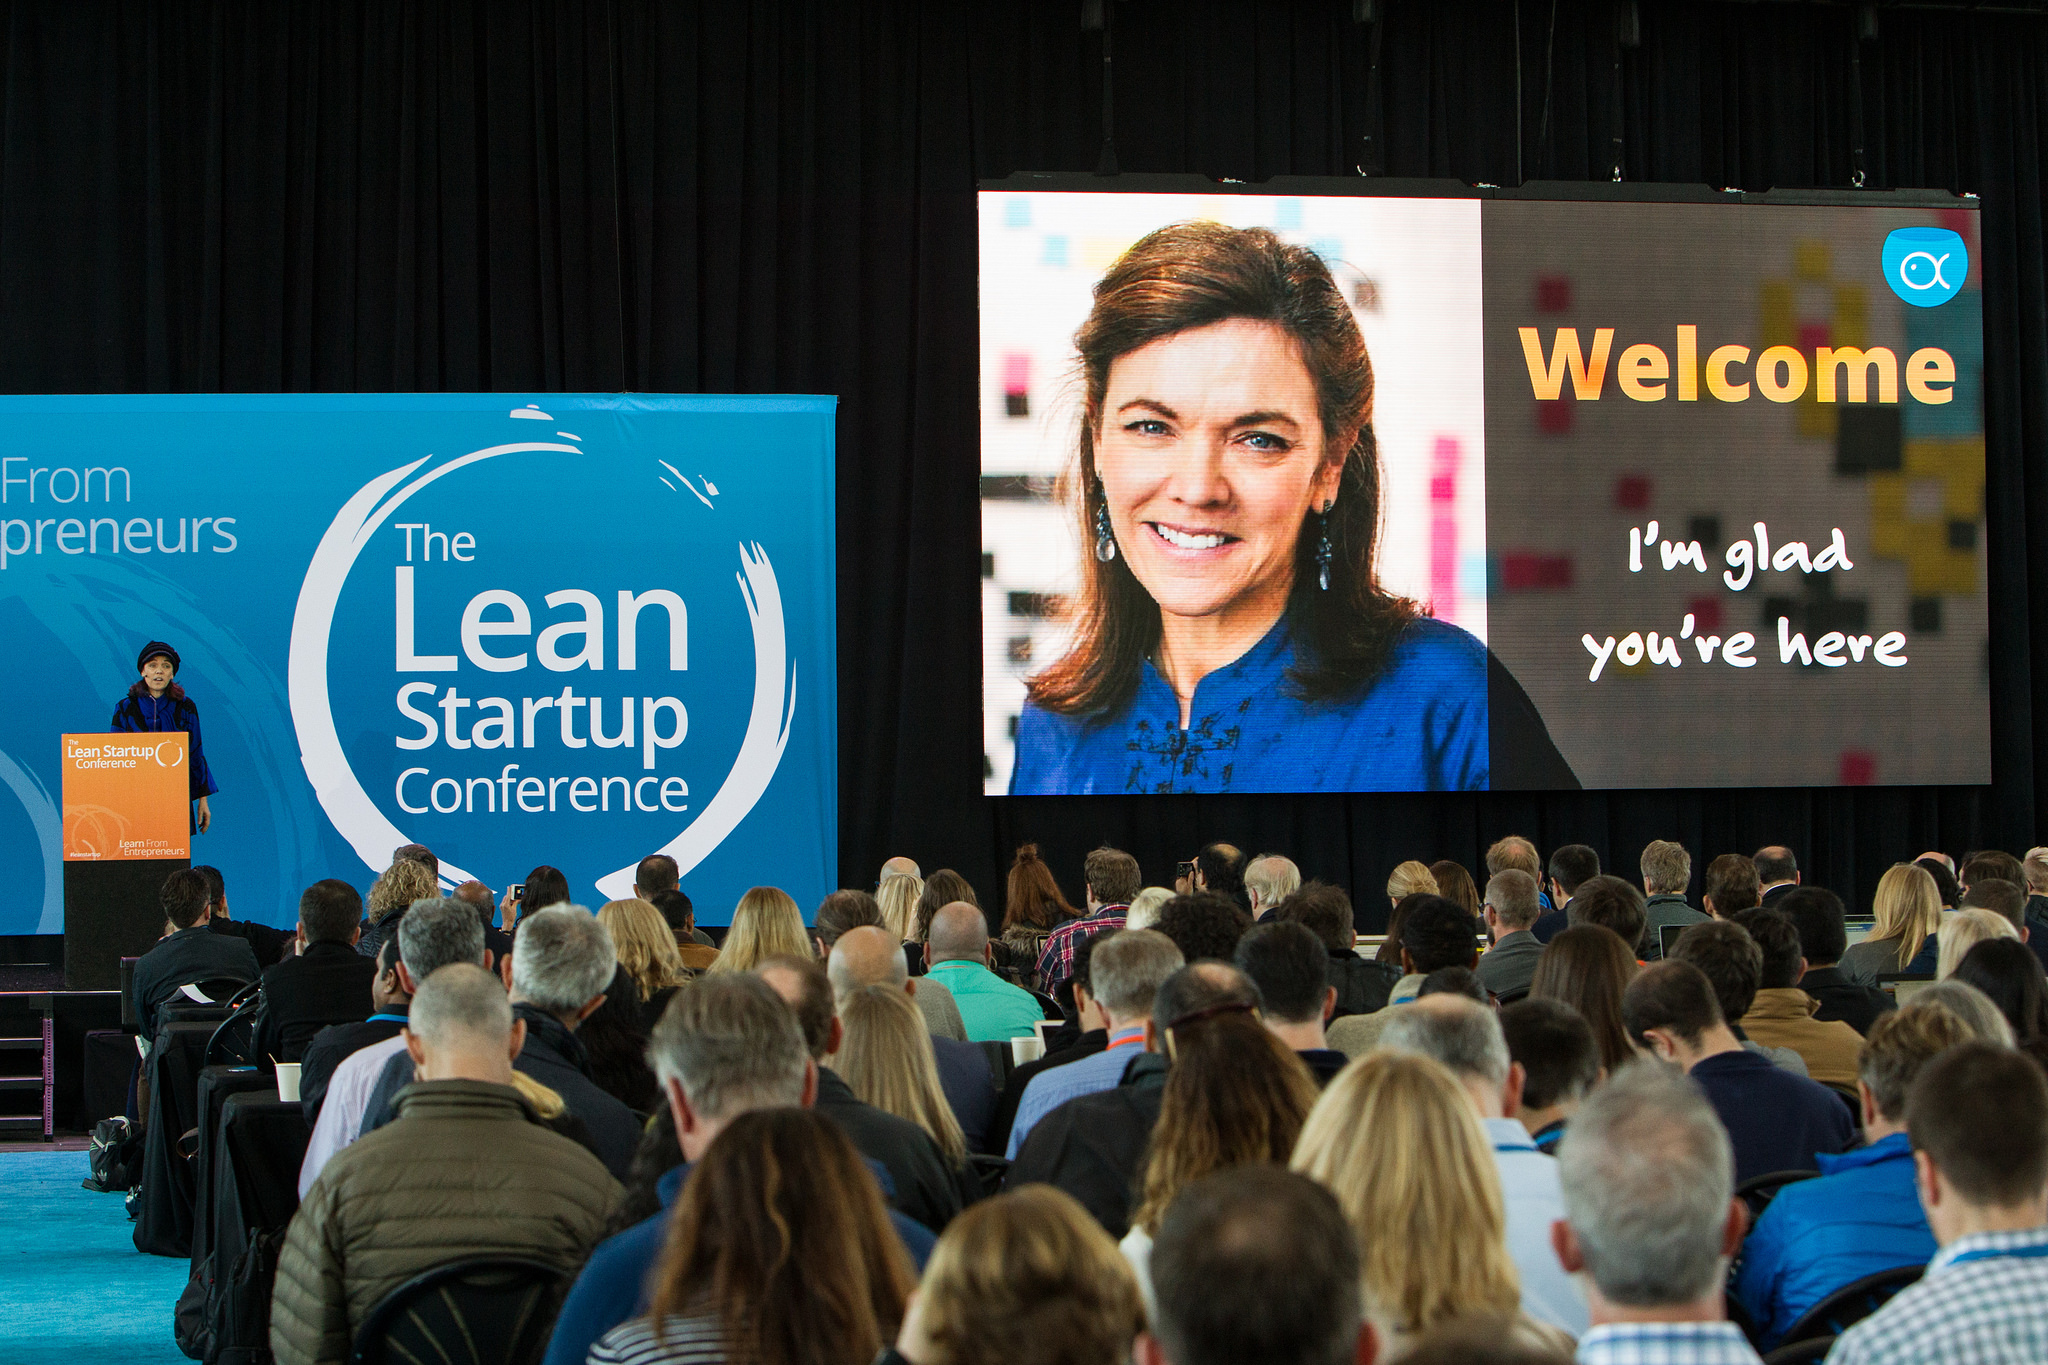 Photo by The Lean Startup Conference/Jakub Mosur and Erin Lubin